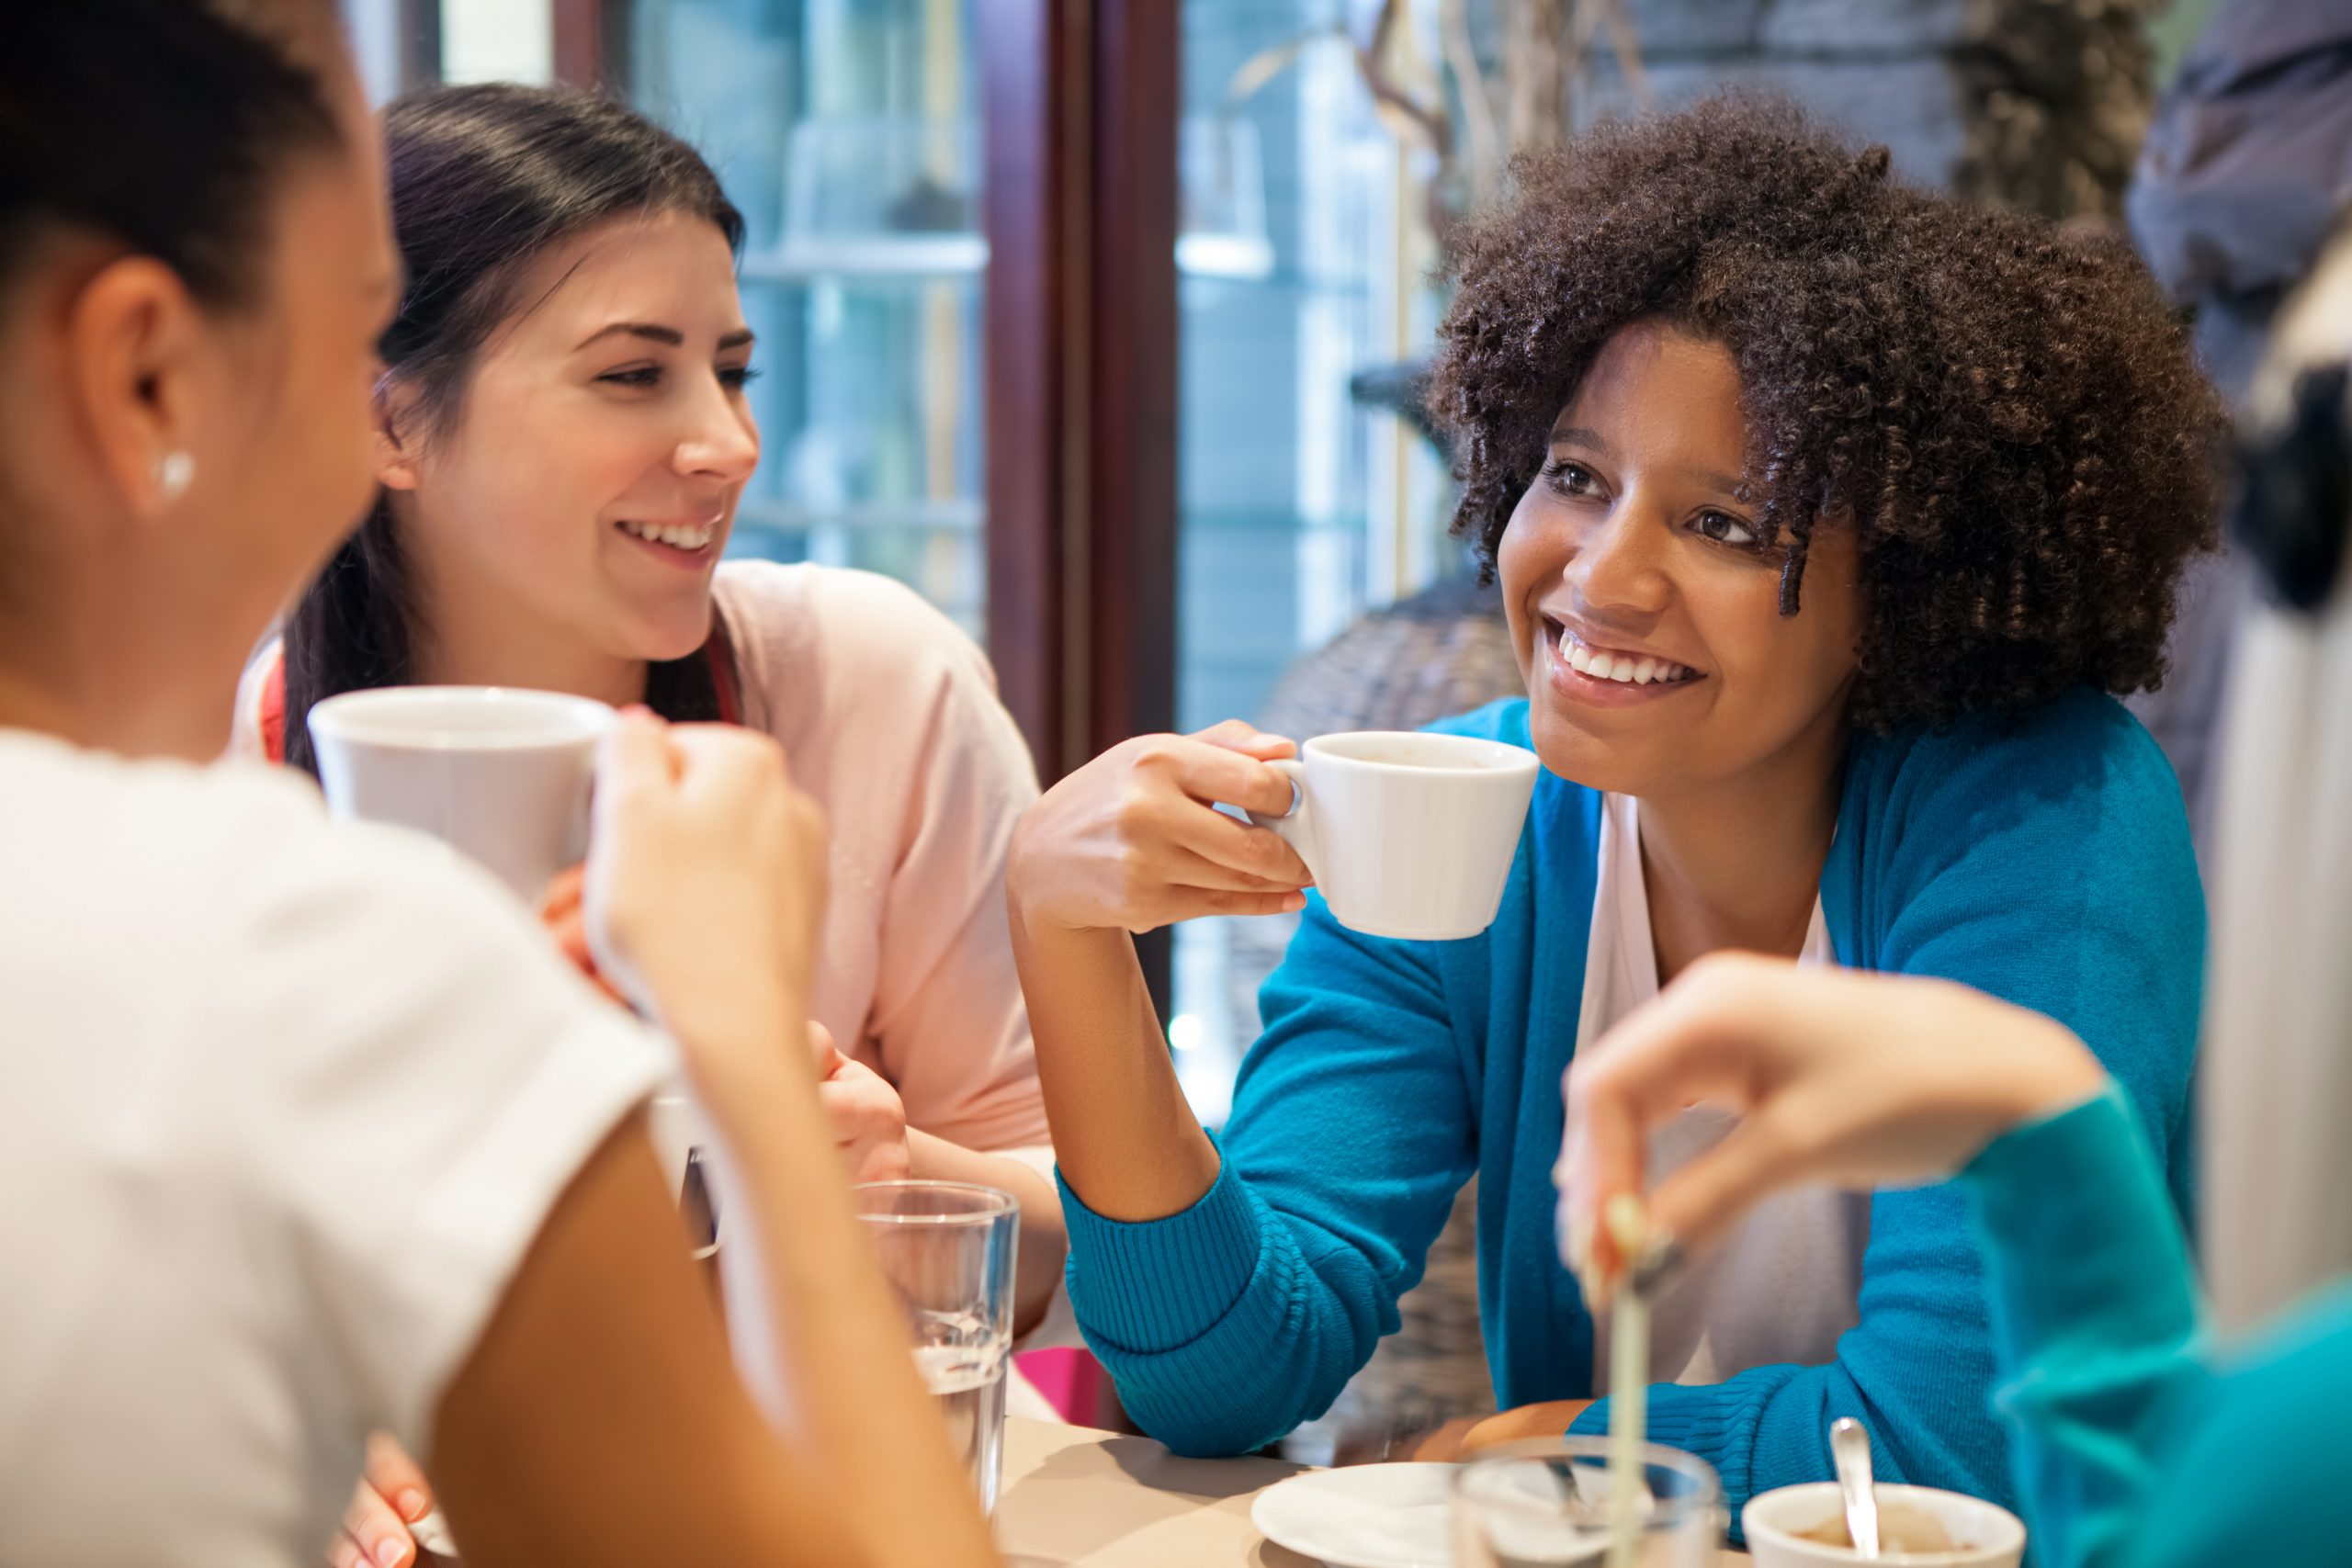 Group of ladies drinking coffee and talking